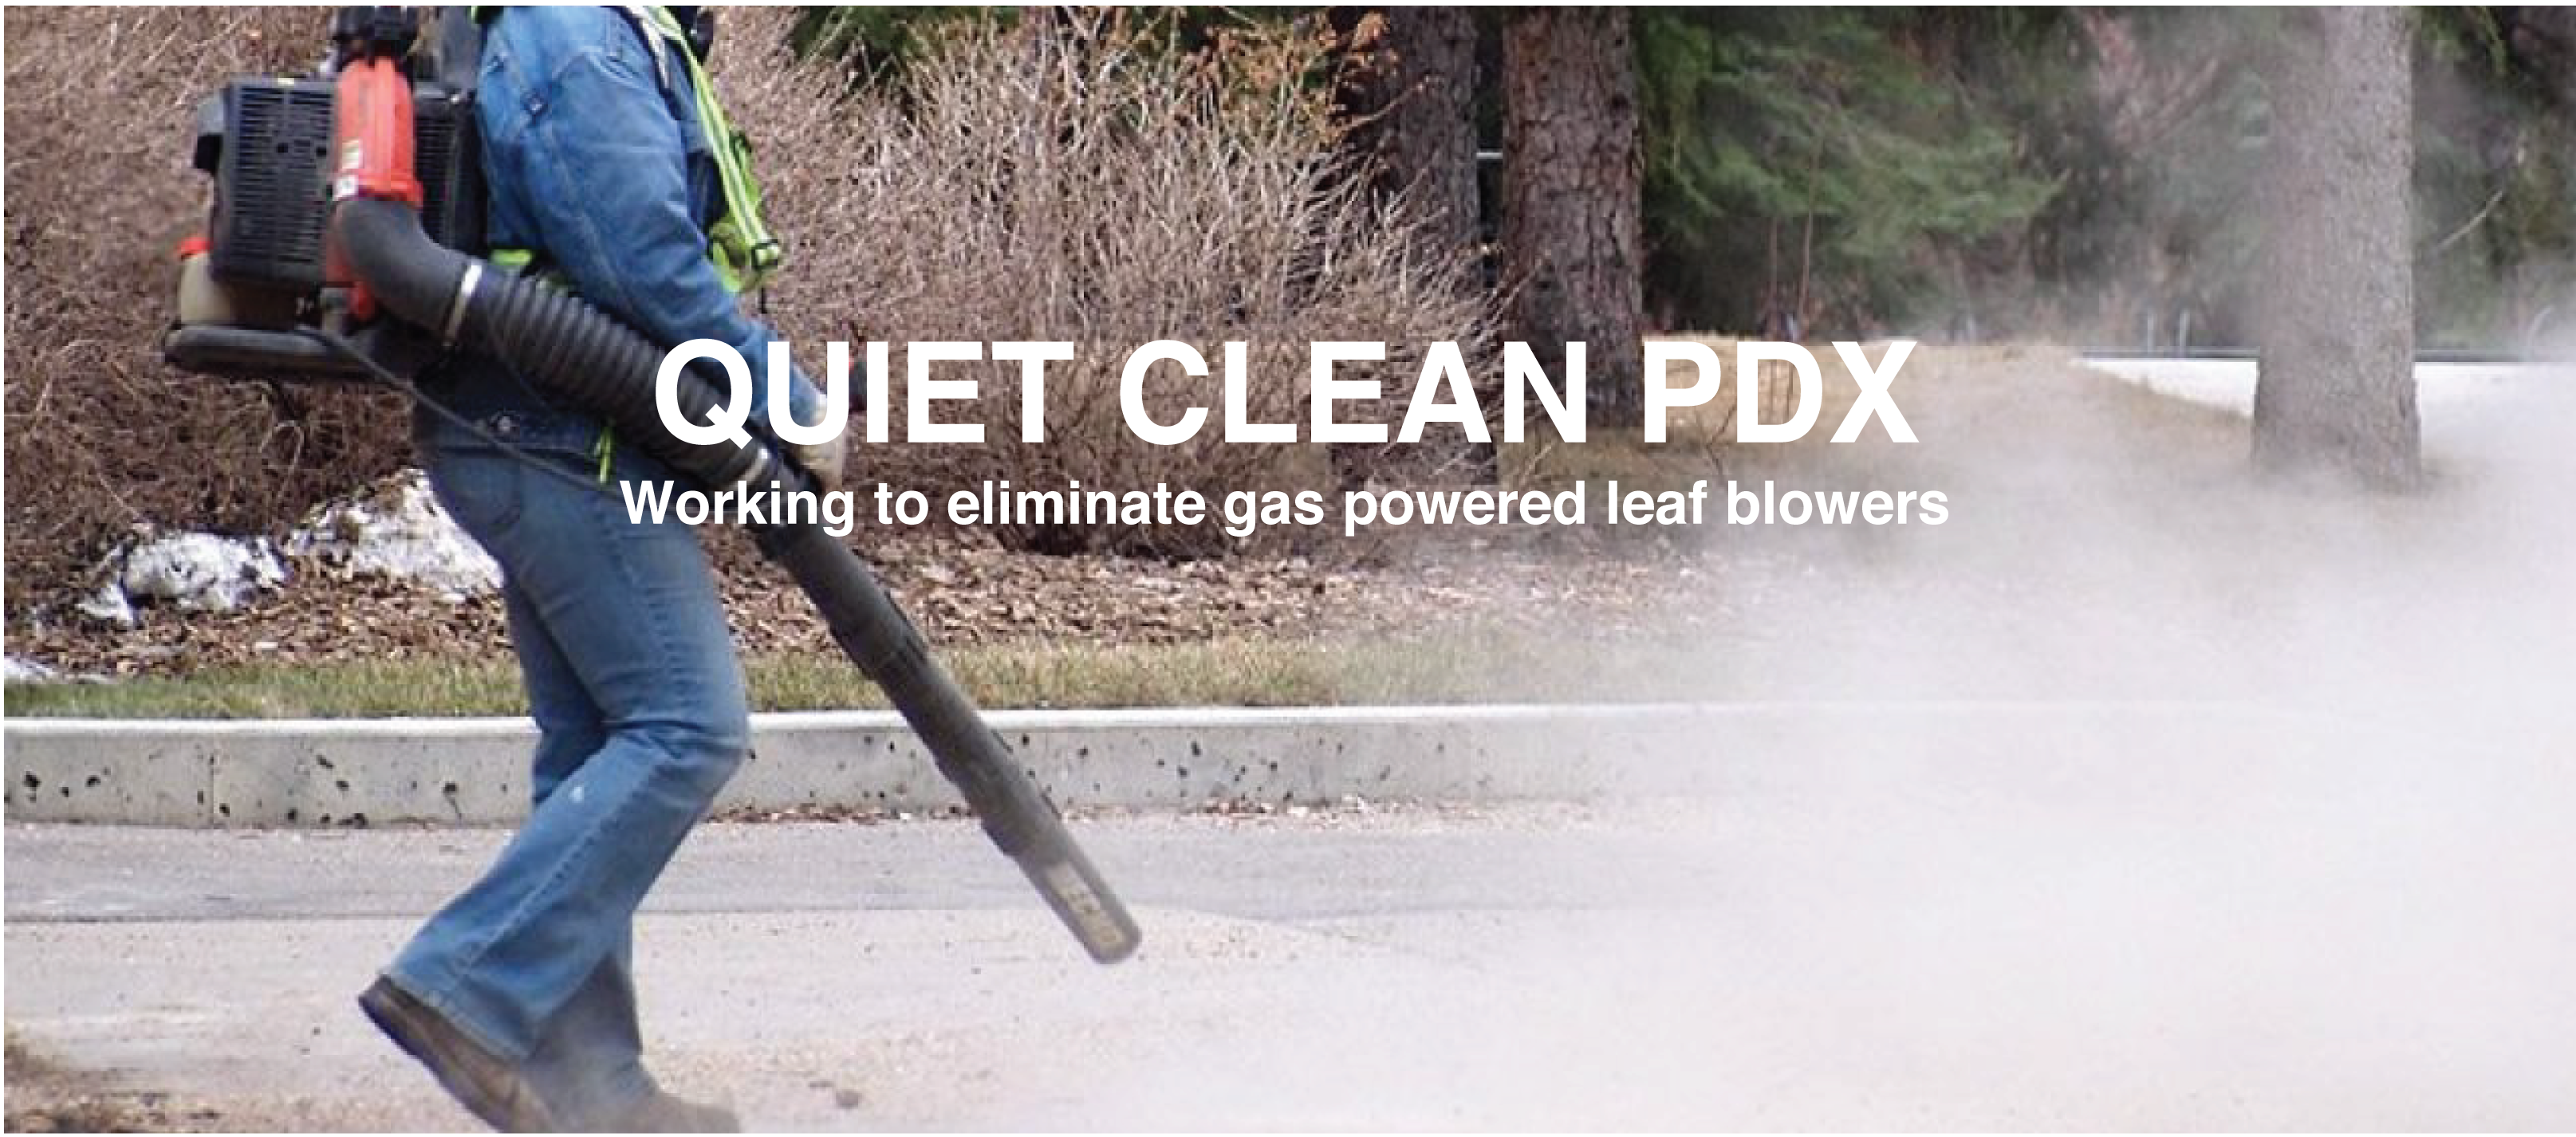 QCPDX working to eliminate gas leaf blowers